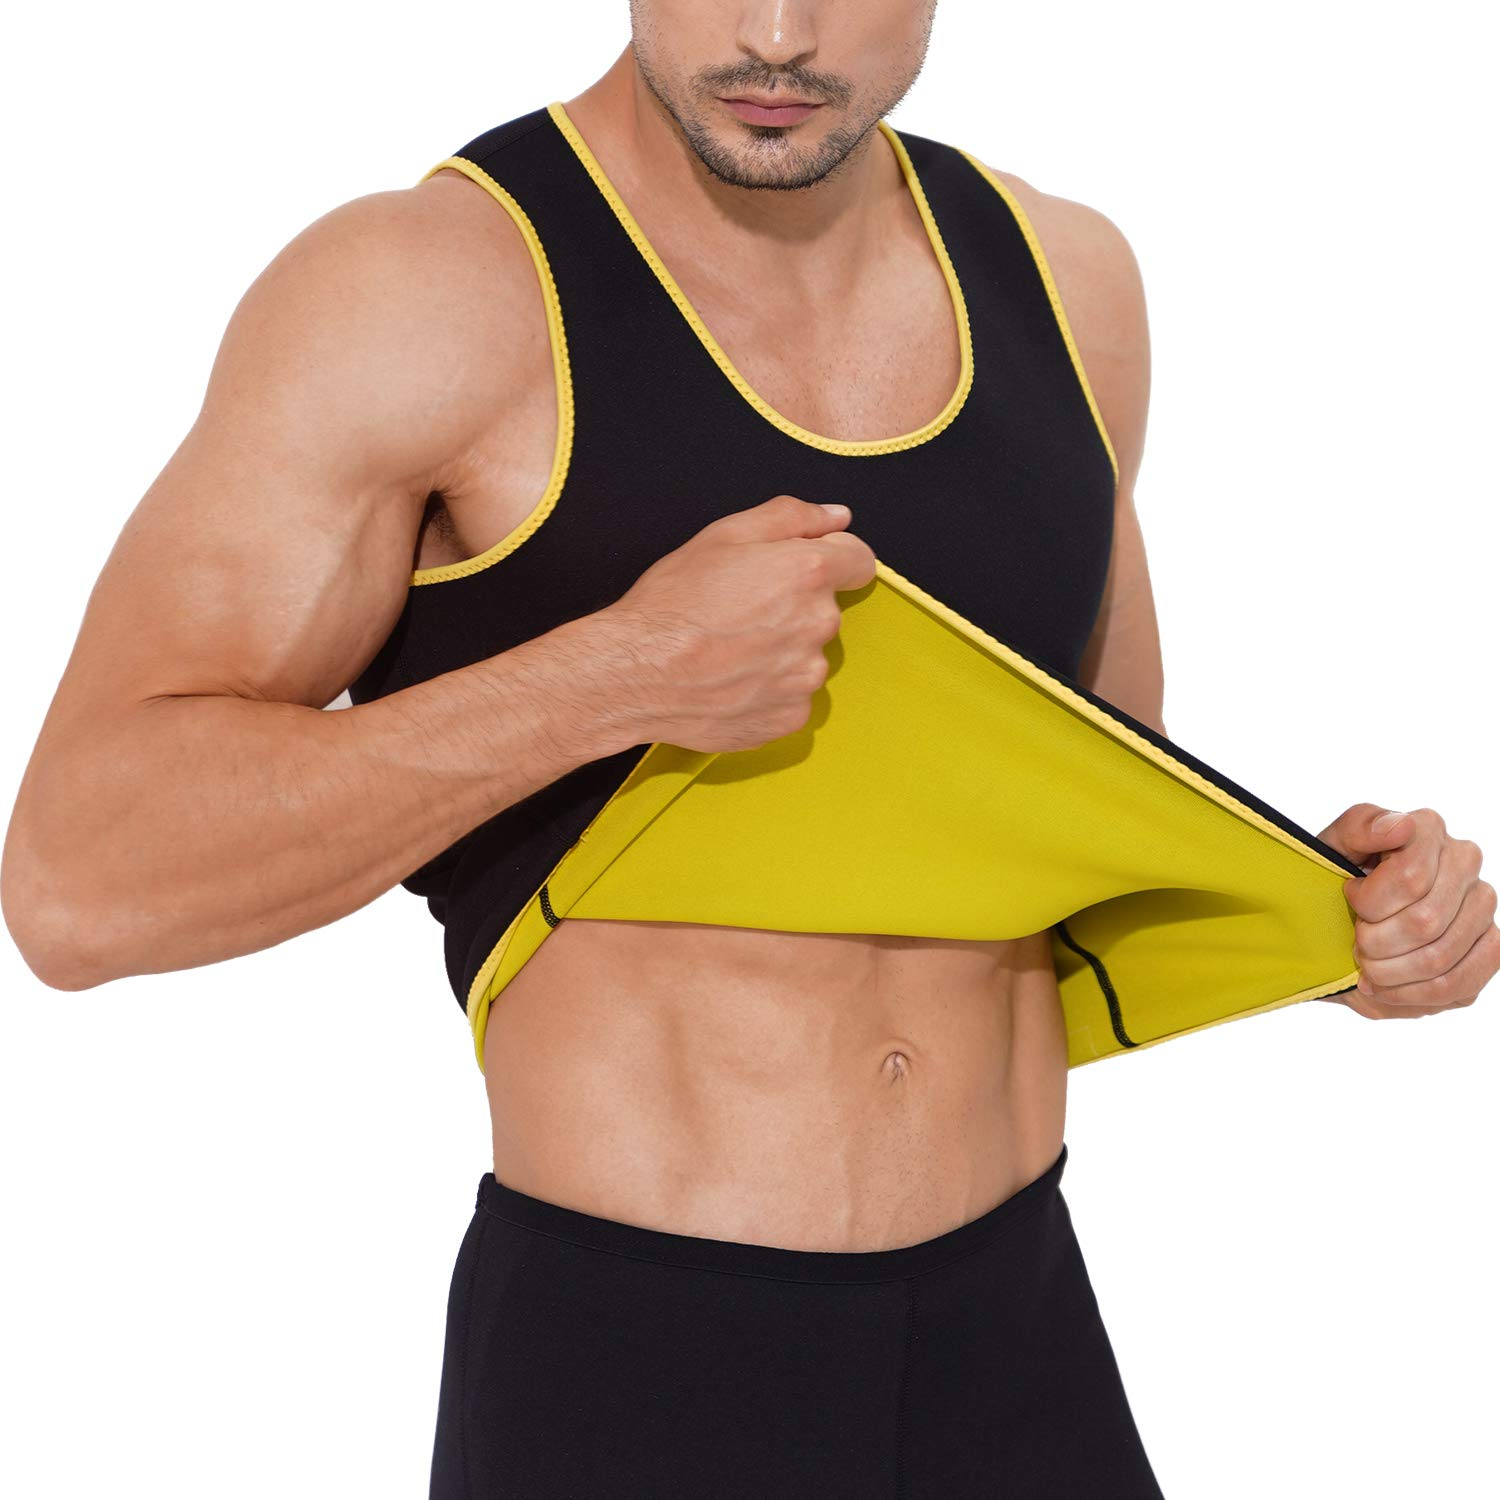 Intimates & Sleep Men Neoprene Sauna Thermo Sweat Body Shaper Waist Trainer Gym Slim Corset Vest